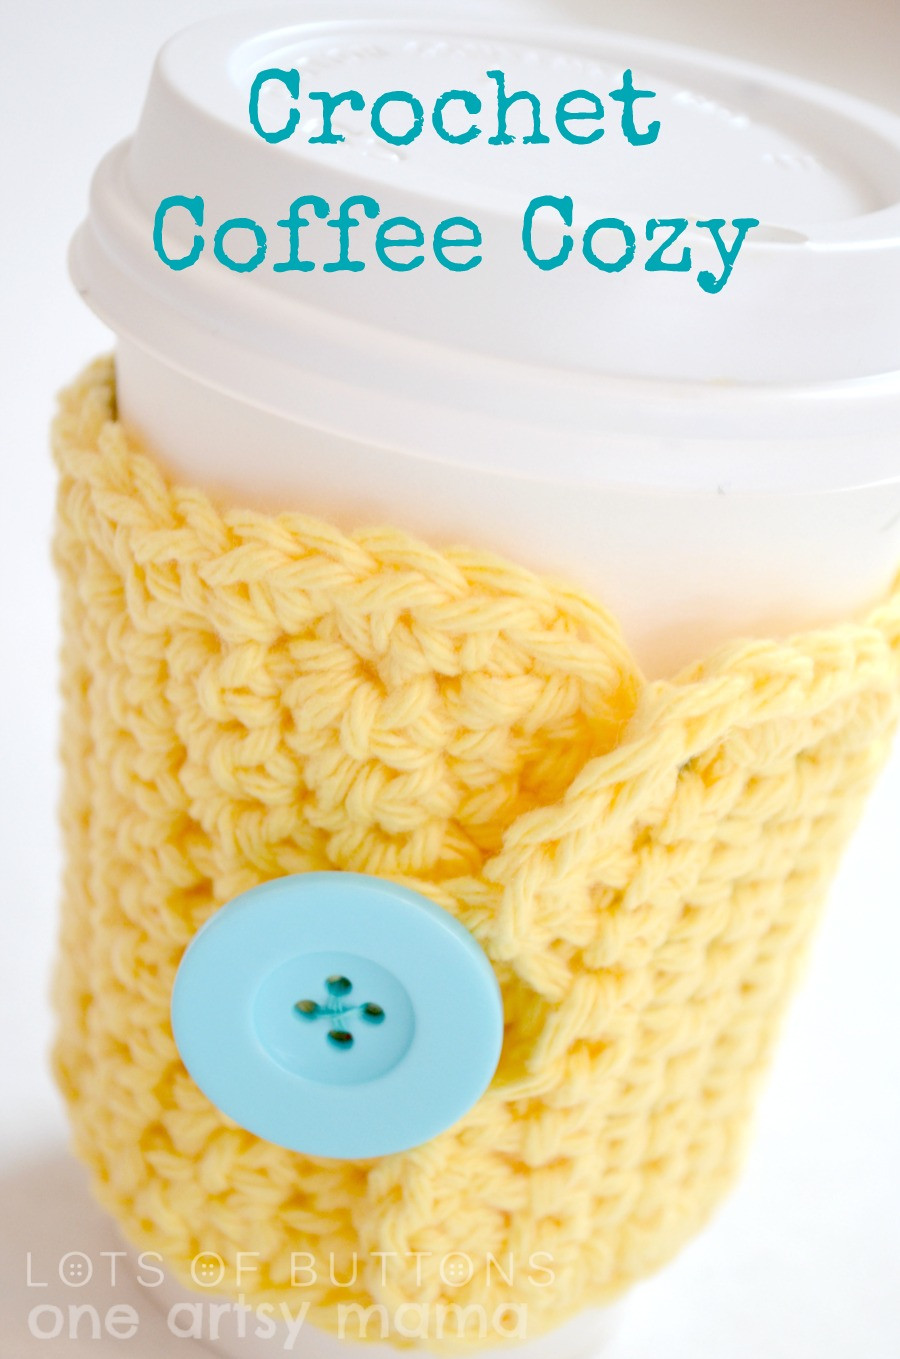 Crochet Coffee Cup Cozy Lovely Crochet Coffee Cozy Amy Latta Creations Of Crochet Coffee Cup Cozy Luxury Happy Holidays Handmade Gift Idea Crochet Heart Coffee